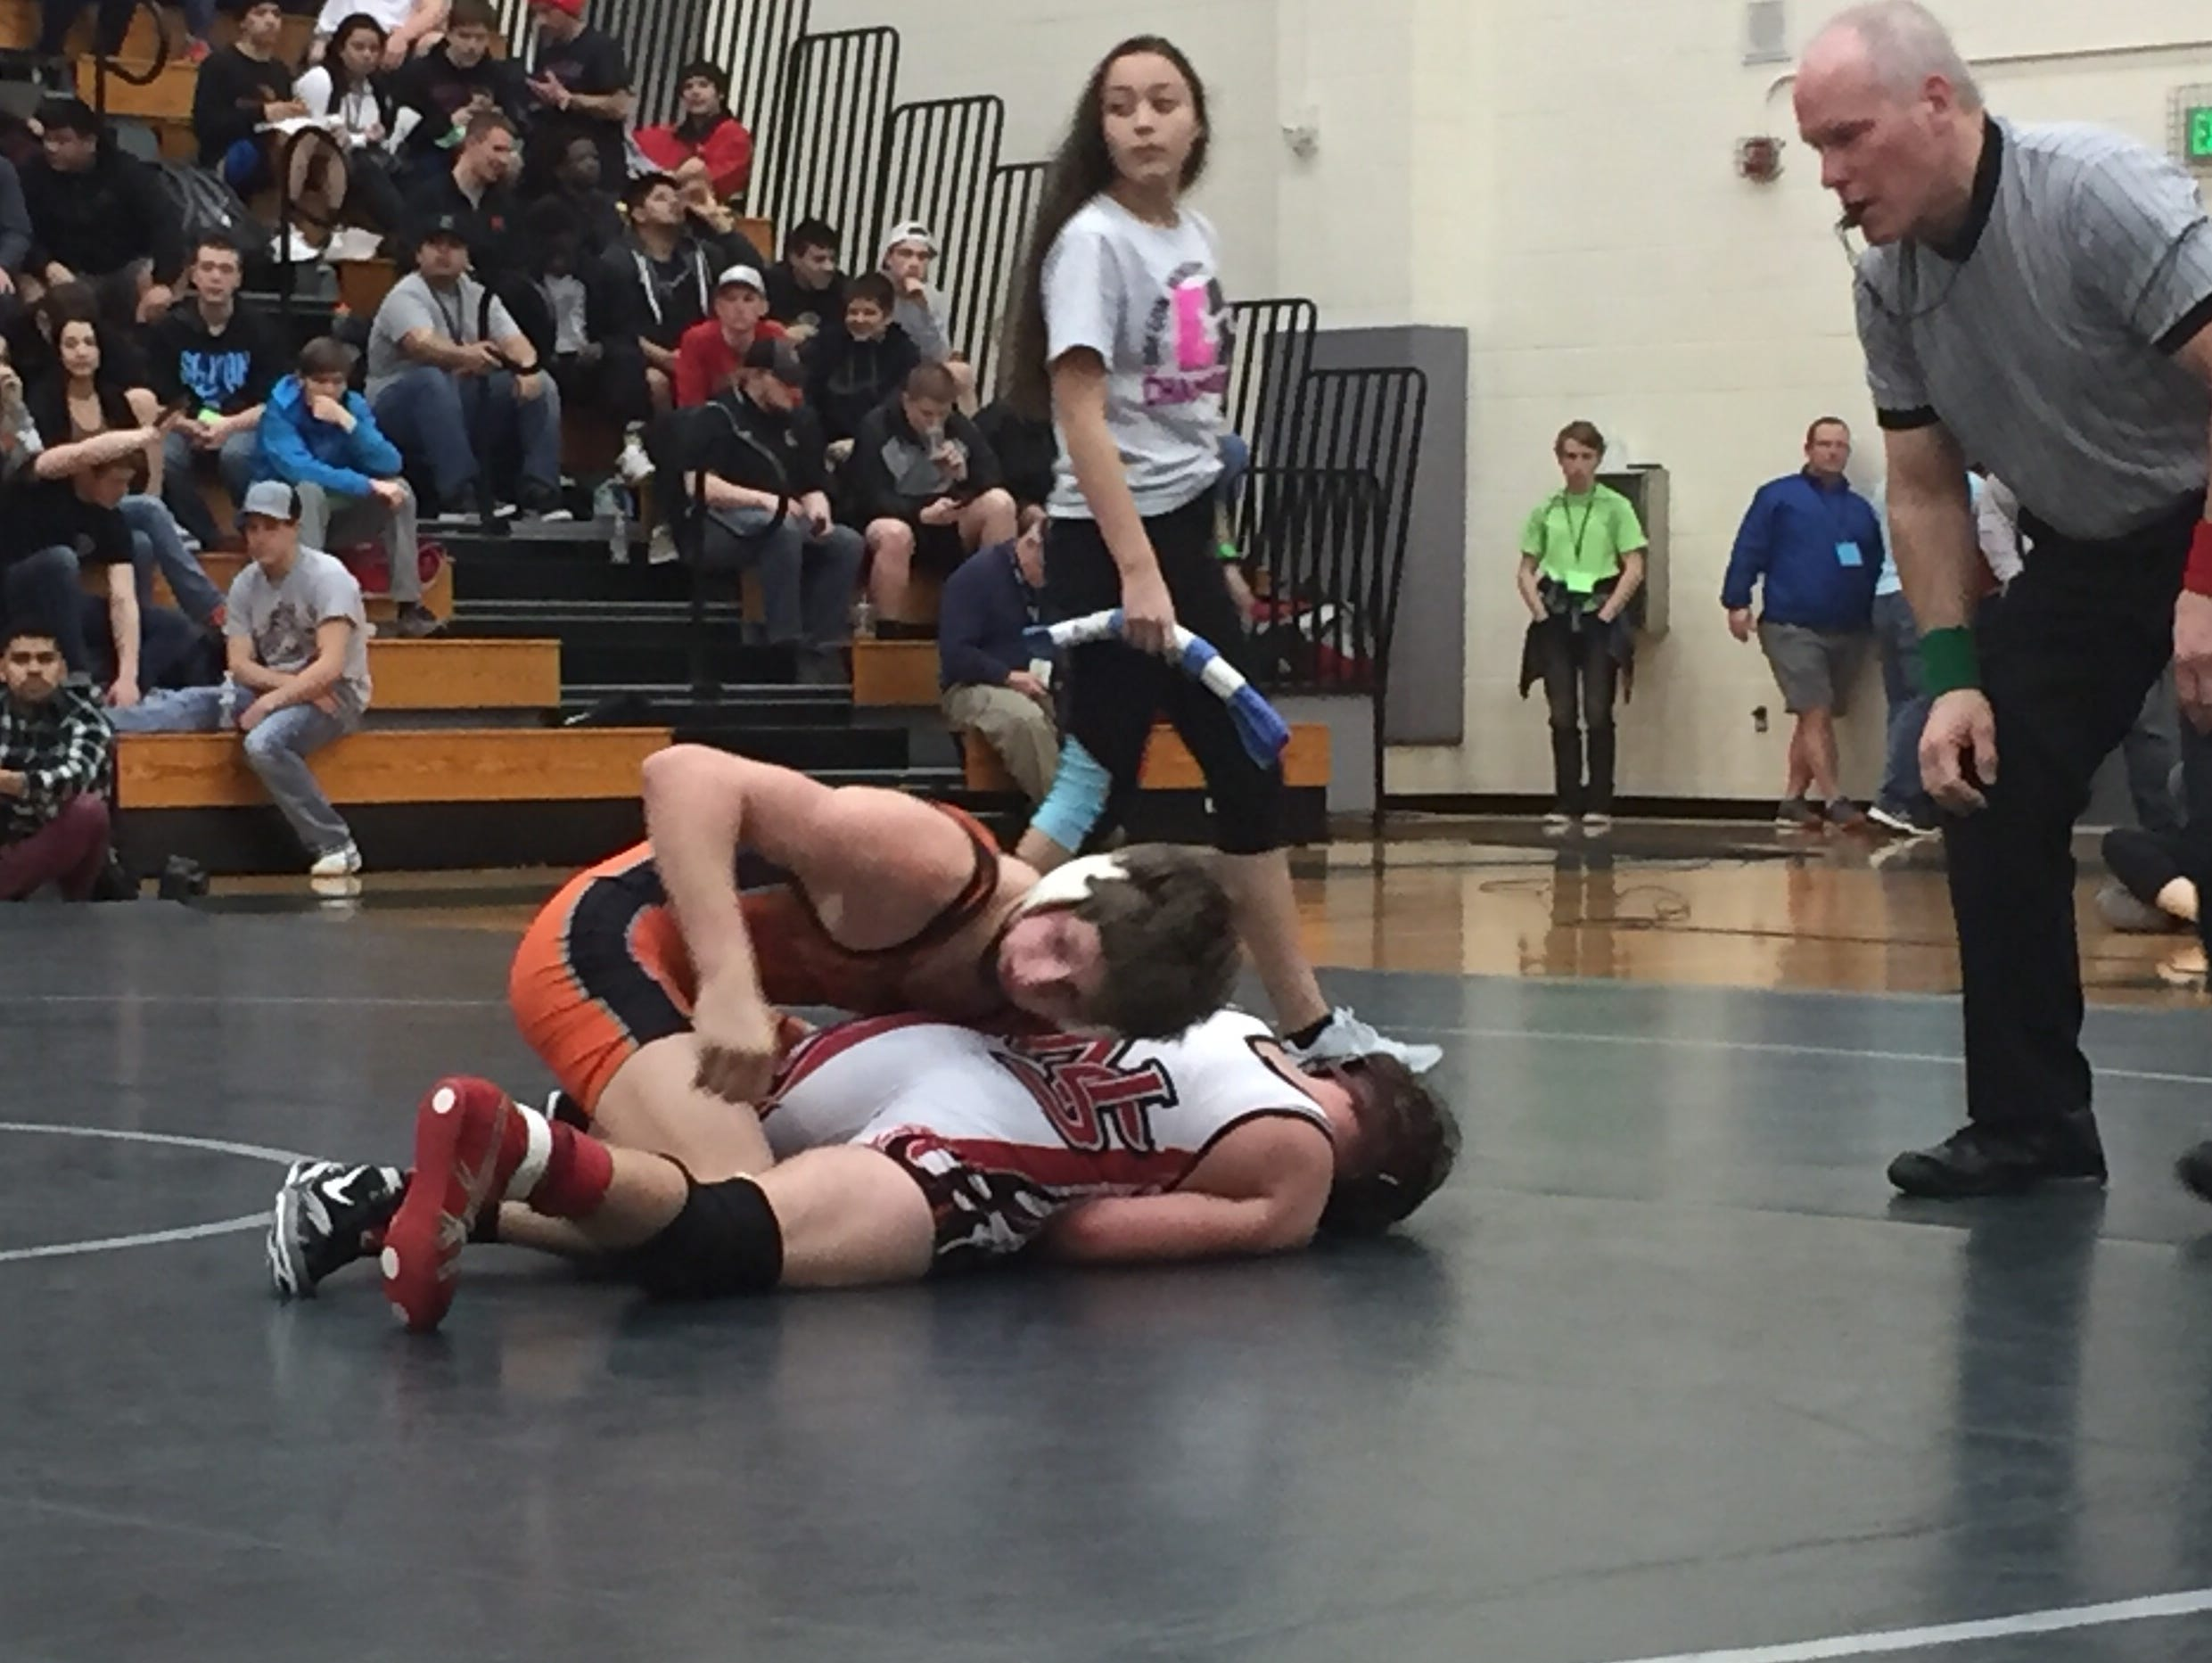 Sprague's Daniel McClung, top), posted a 16-4 decision over North Salem's Shannon Glover in the GVC district championship match at 126 pounds.